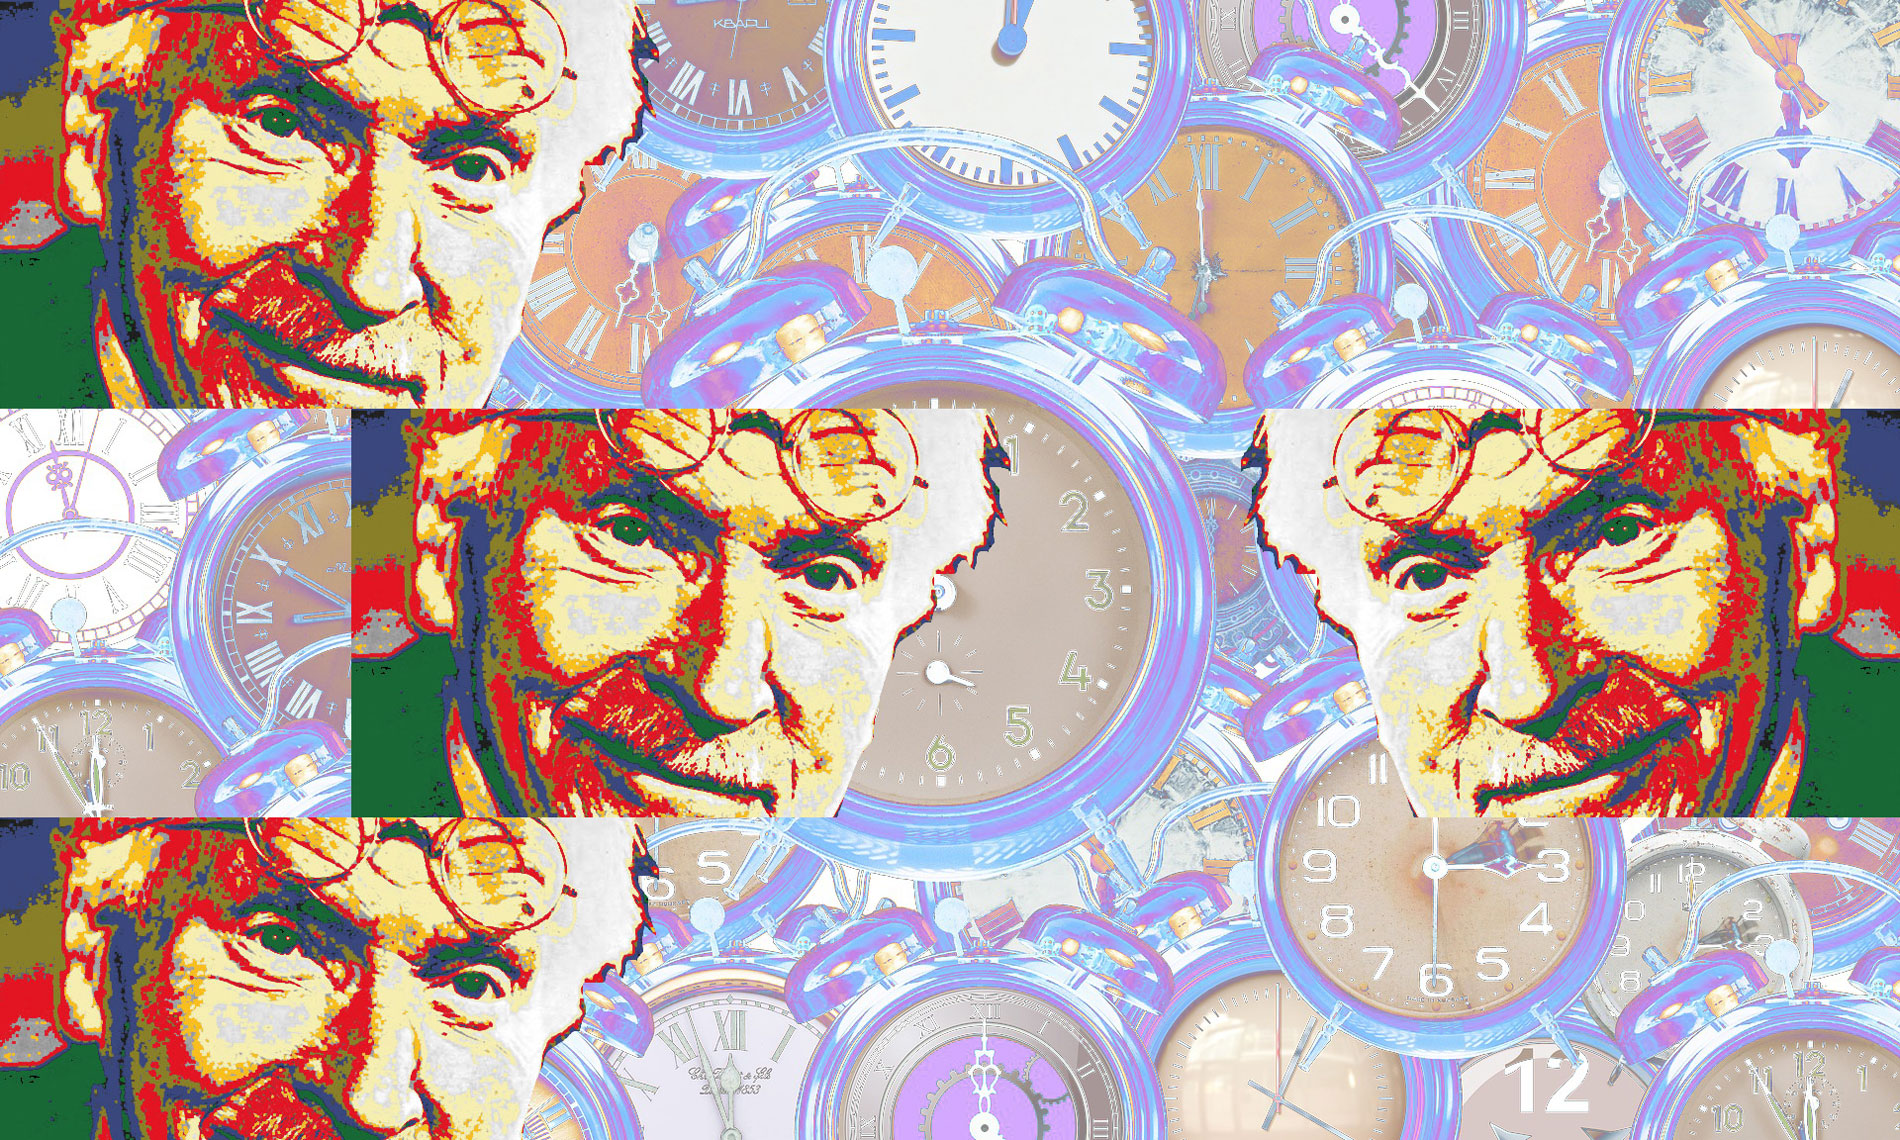 carl jung and synchronicity